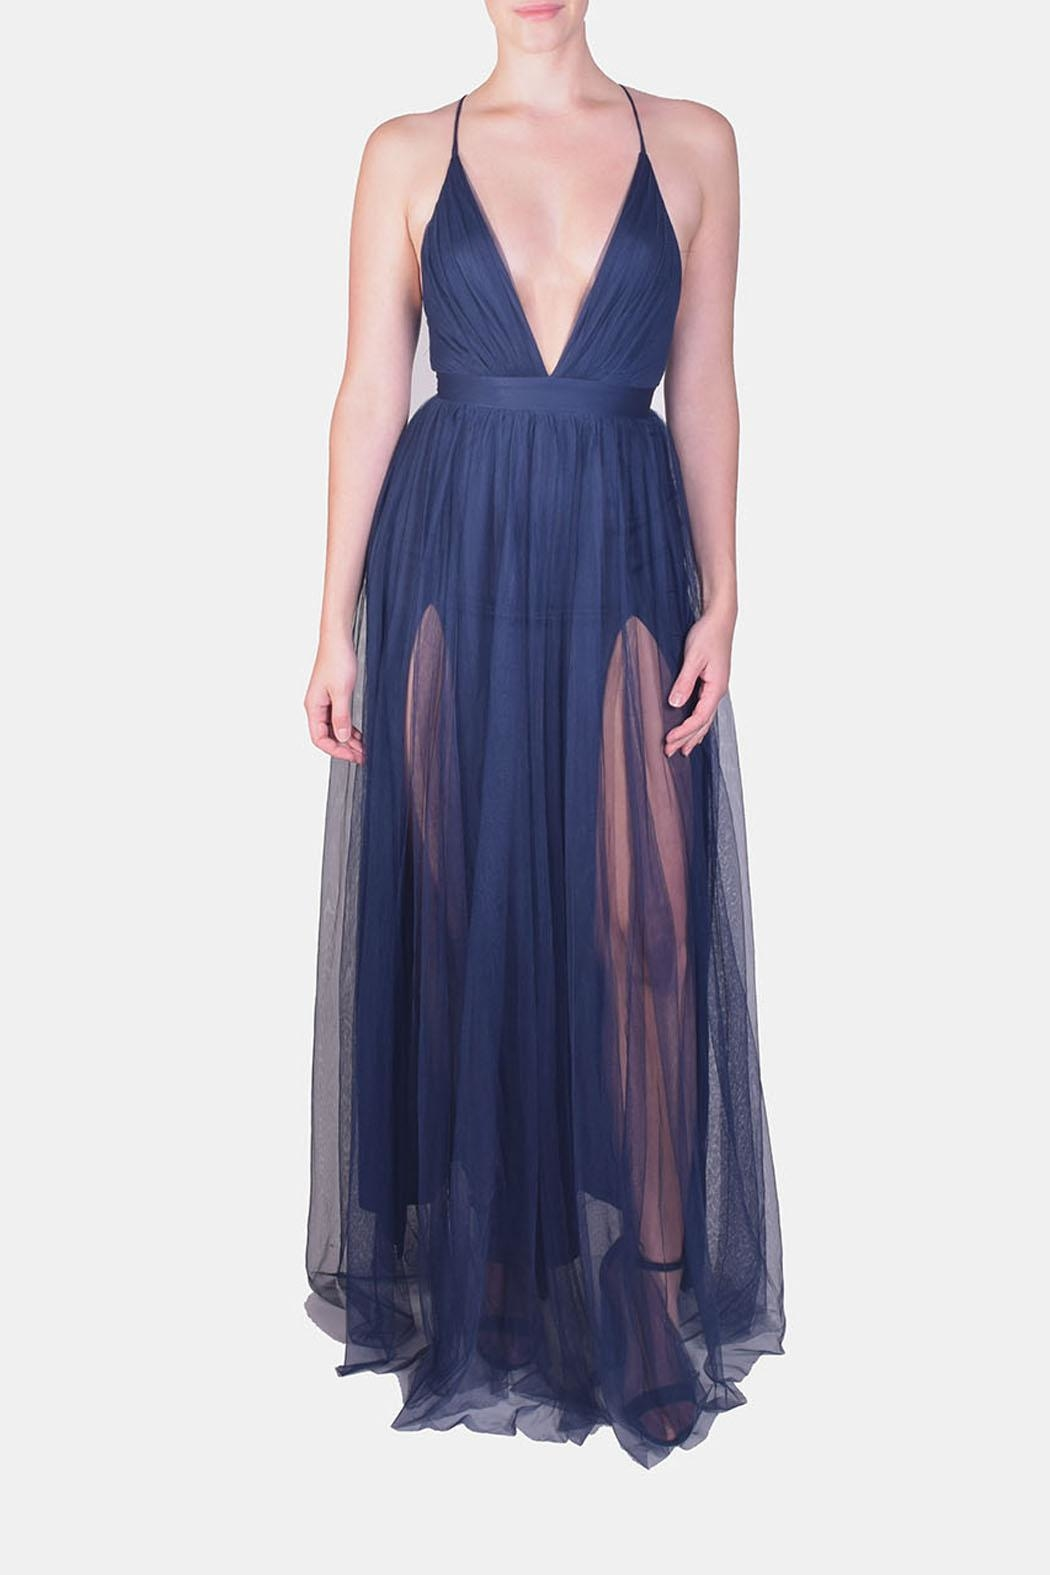 luxxel Enchantress Gown Navy - Main Image